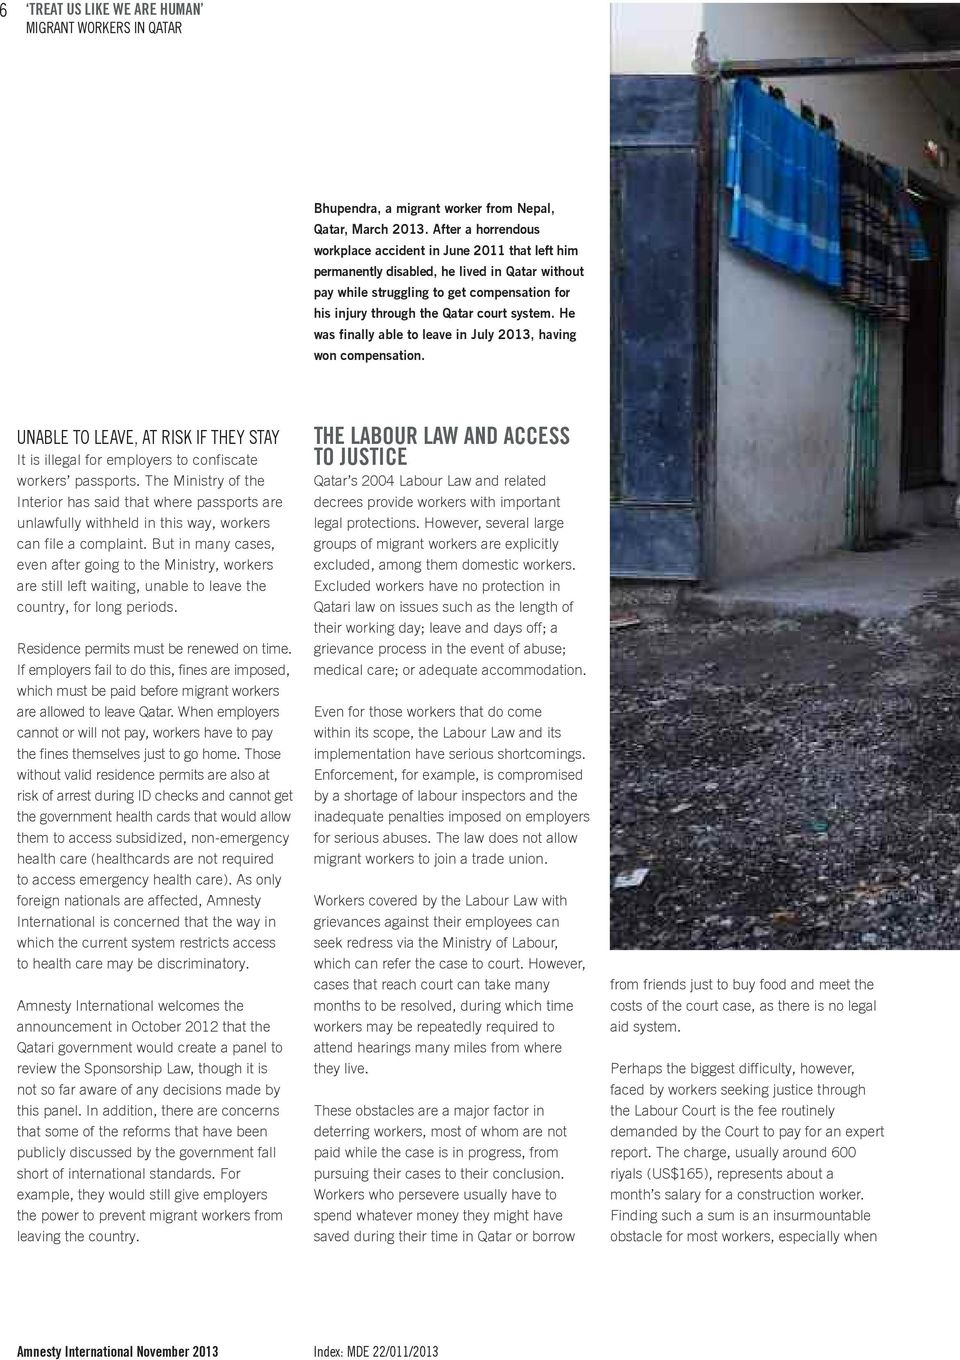 TREAT US LIKE WE ARE HUMAN MIGRANT WORKERS IN QATAR - PDF